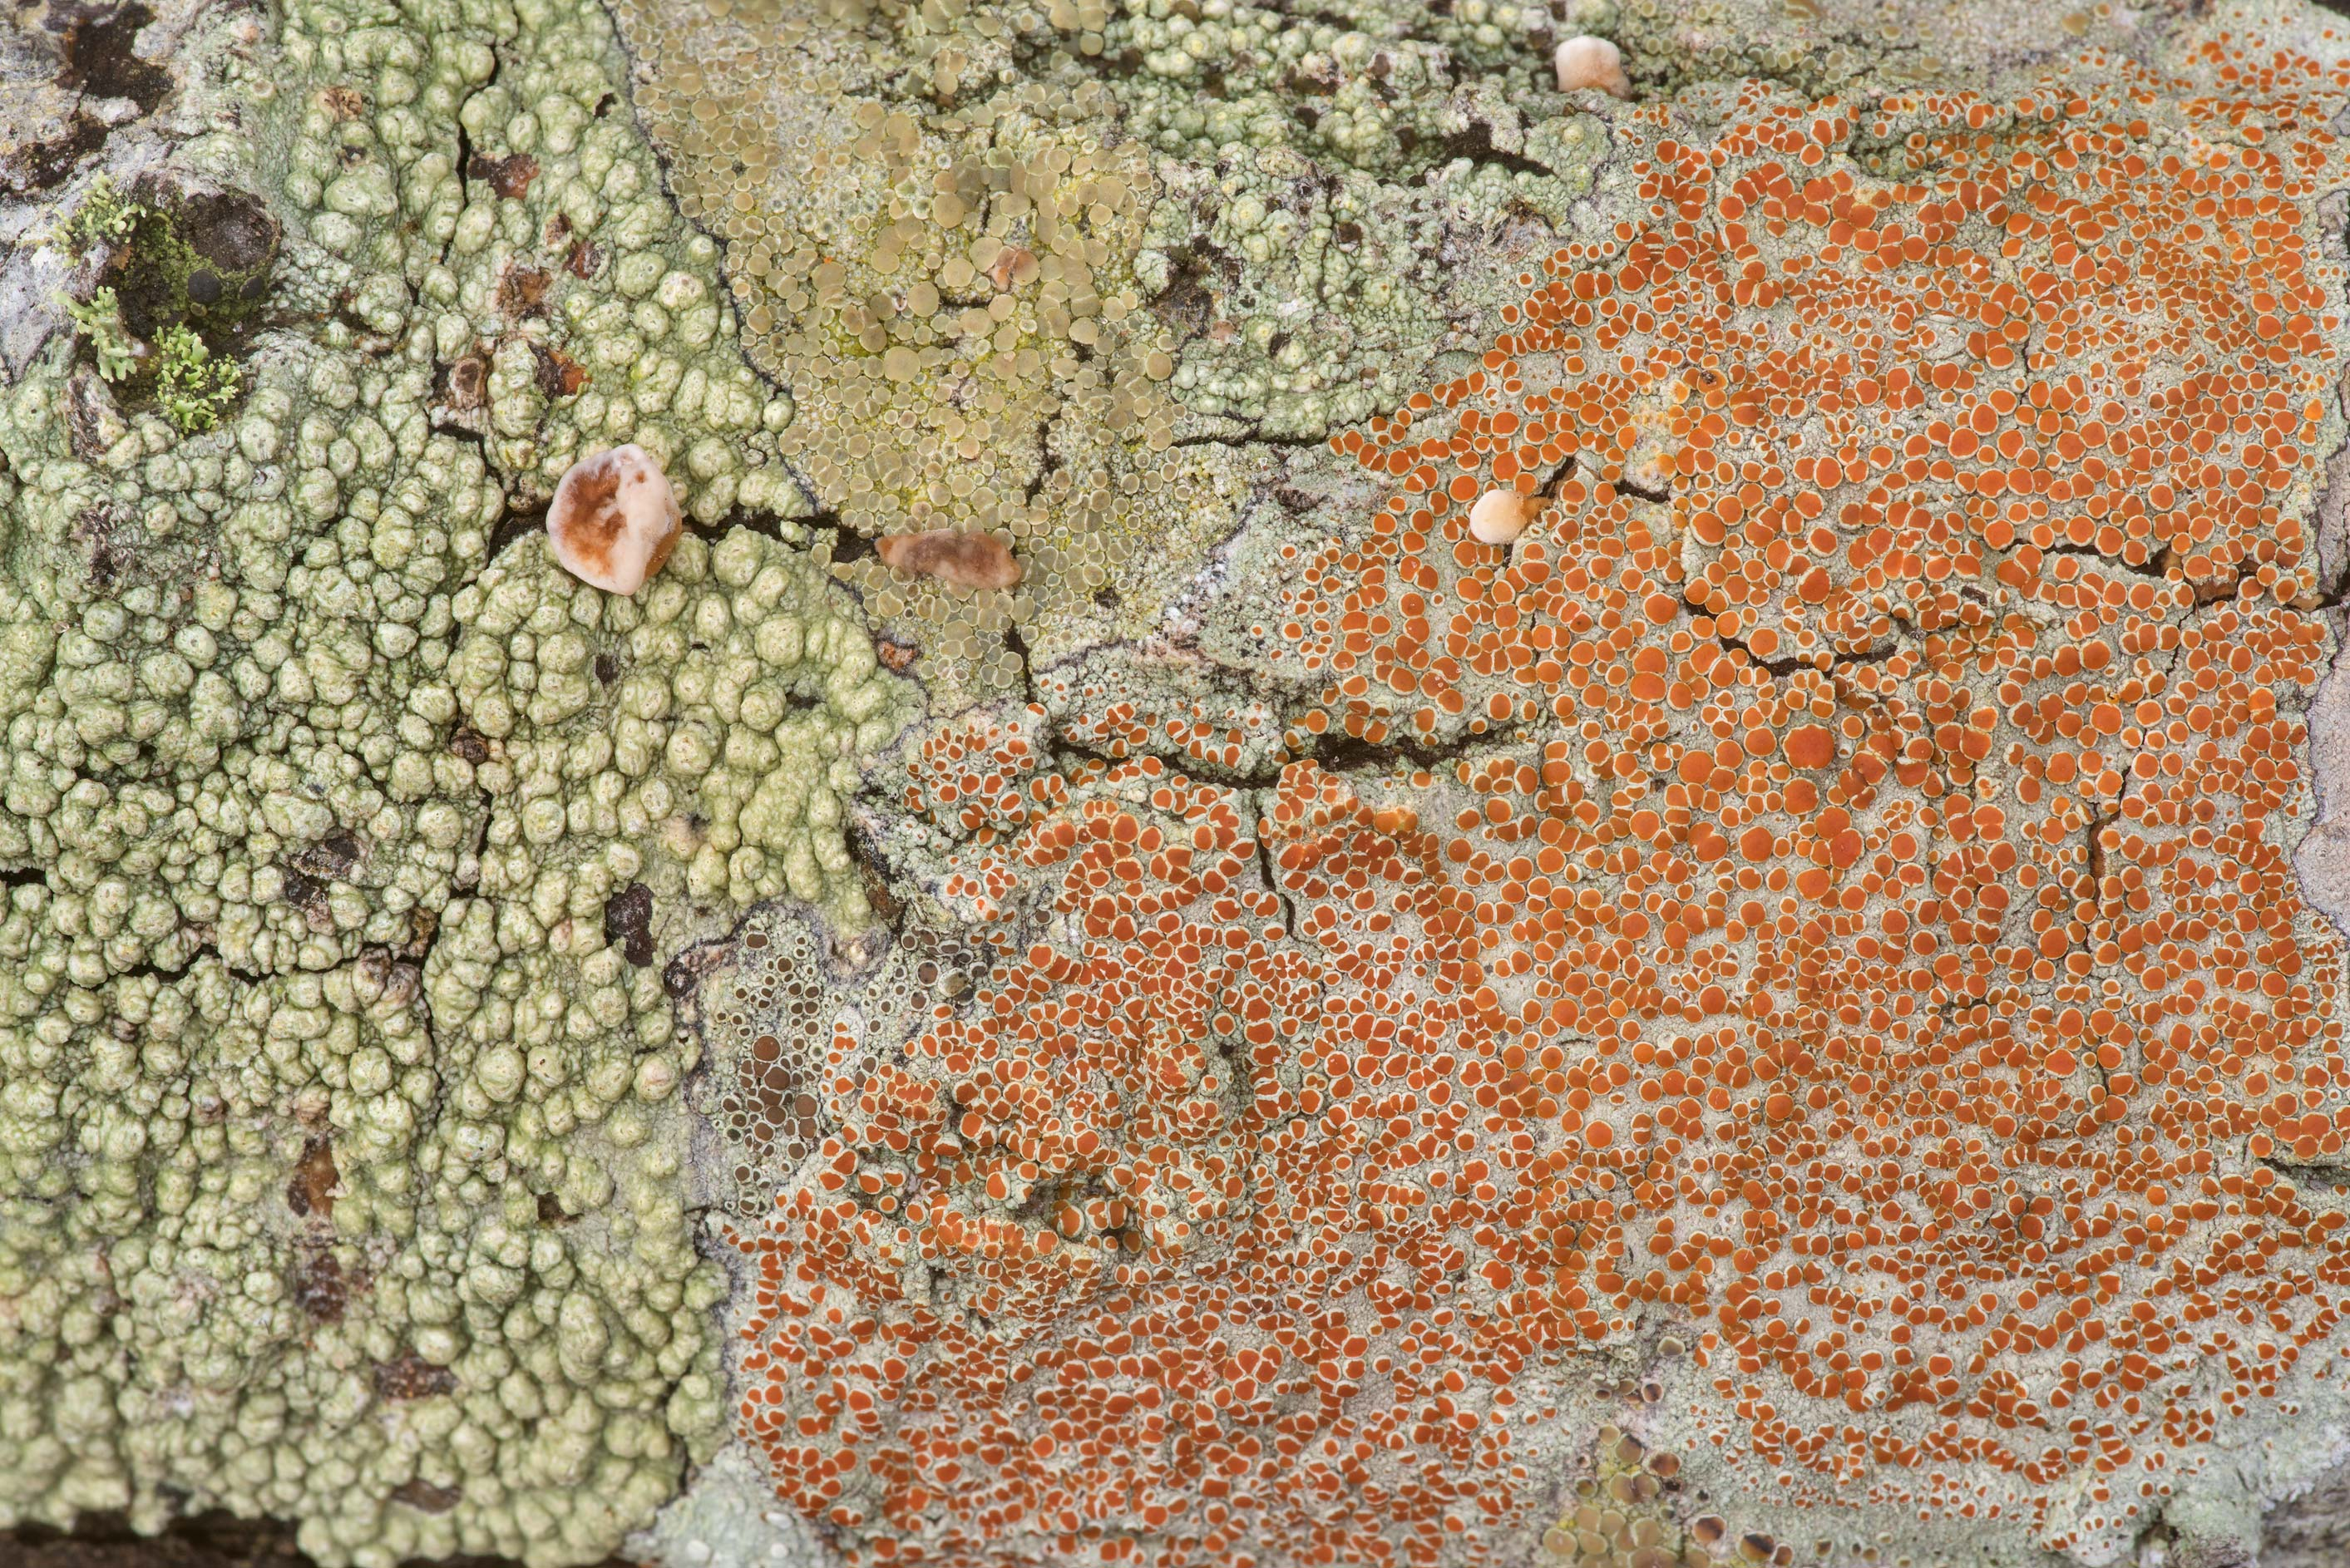 Pertusaria and sunken bloodspot (Haematomma...Creek Park. College Station, Texas